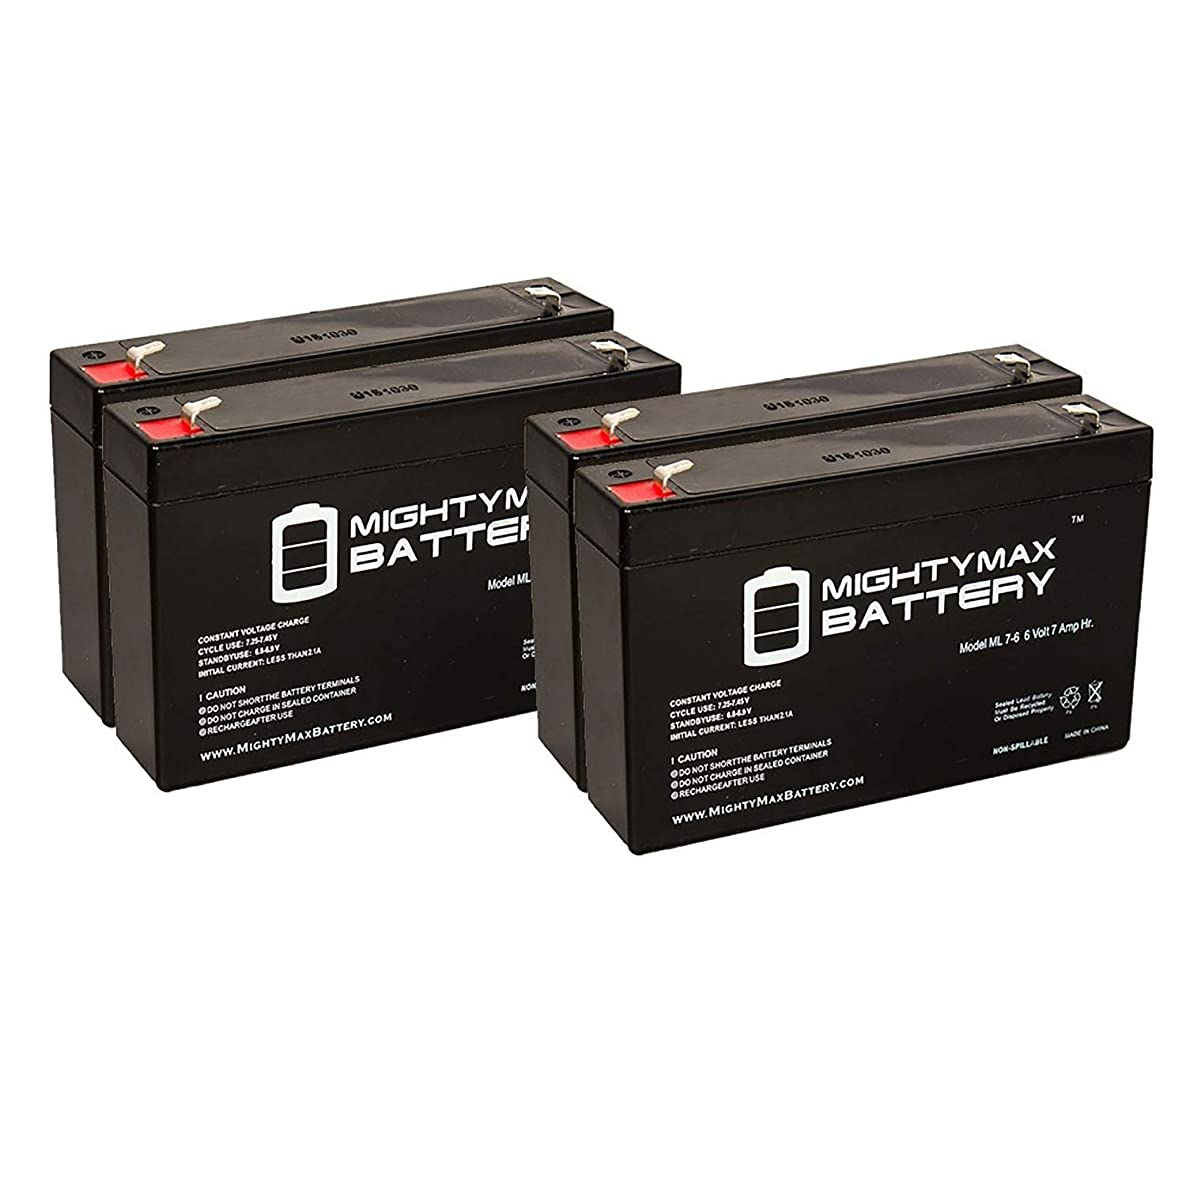 Mighty Max Battery 6V 7Ah SLA Battery Replacement for Leoch LP6-7.0, LP 6-7.0 - 4 Pack Brand Product